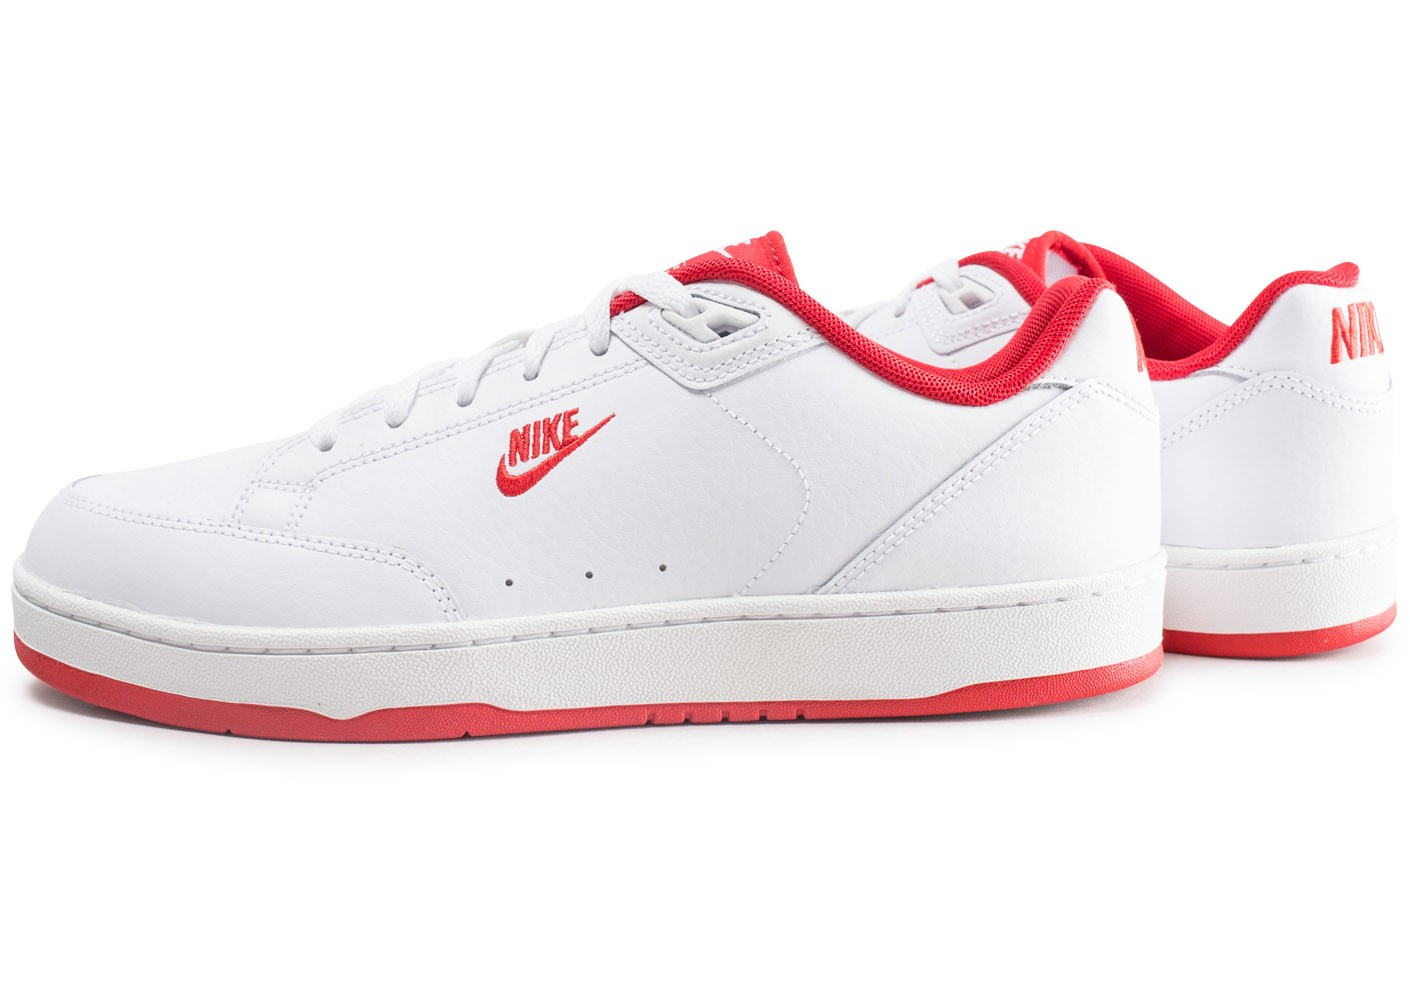 Homme 2 Nike Rouge Chaussures Baskets Et Blanche Grandstand Nmw08n